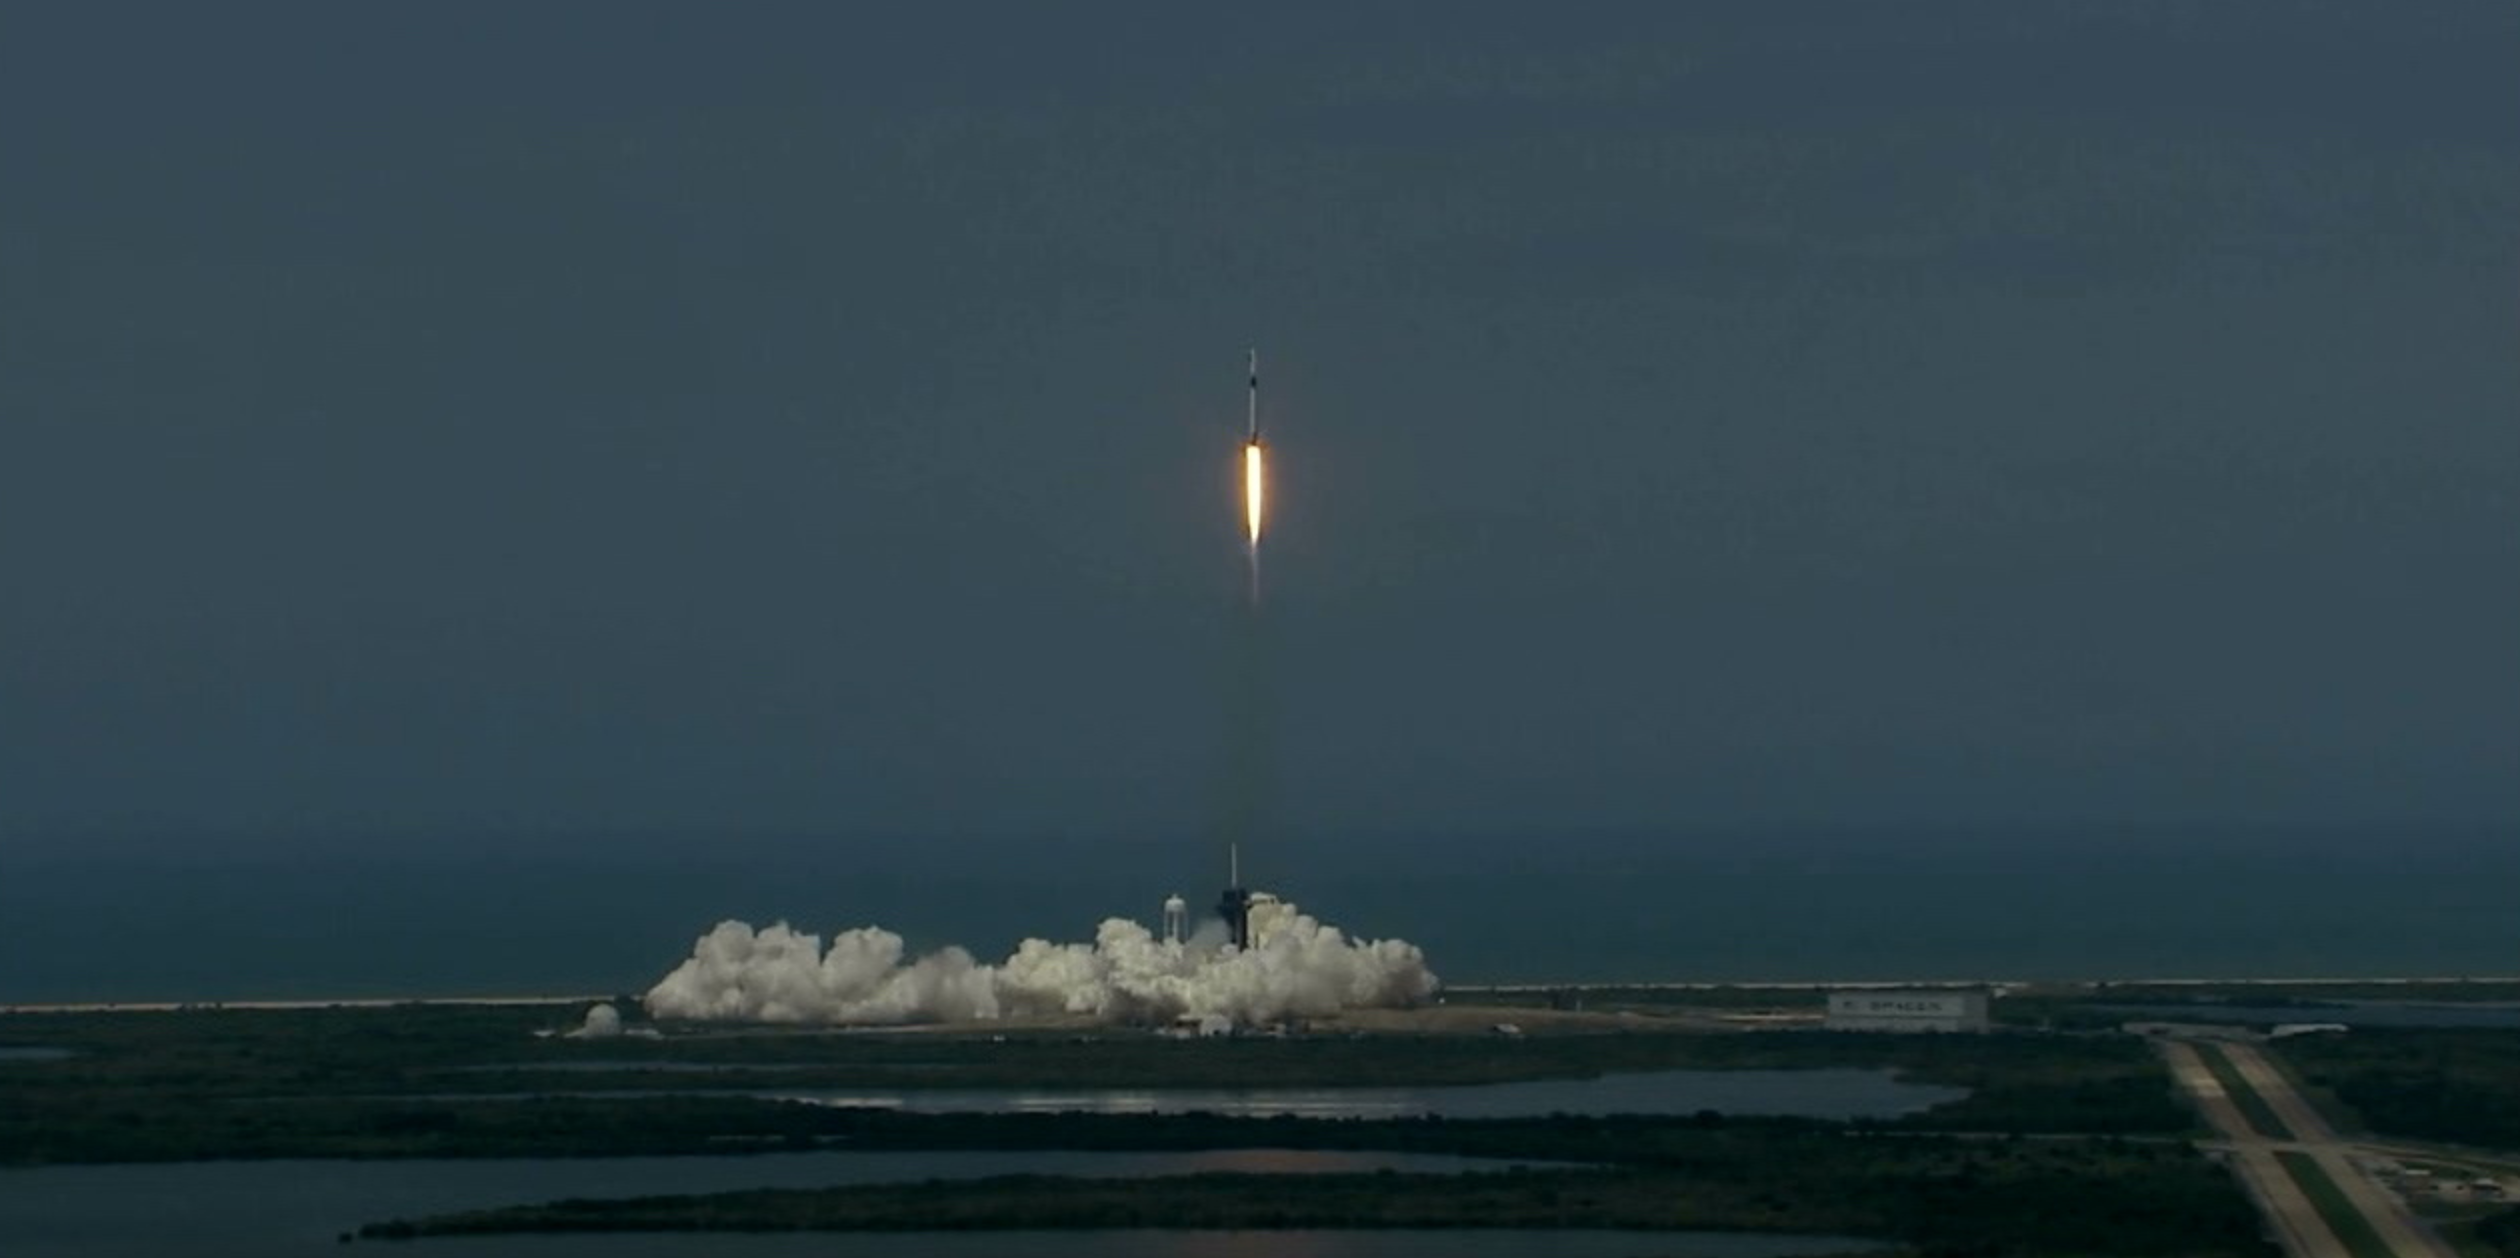 LIFTOFF! NASA's SpaceX Demo-2 Launches the Commercial Crew Era